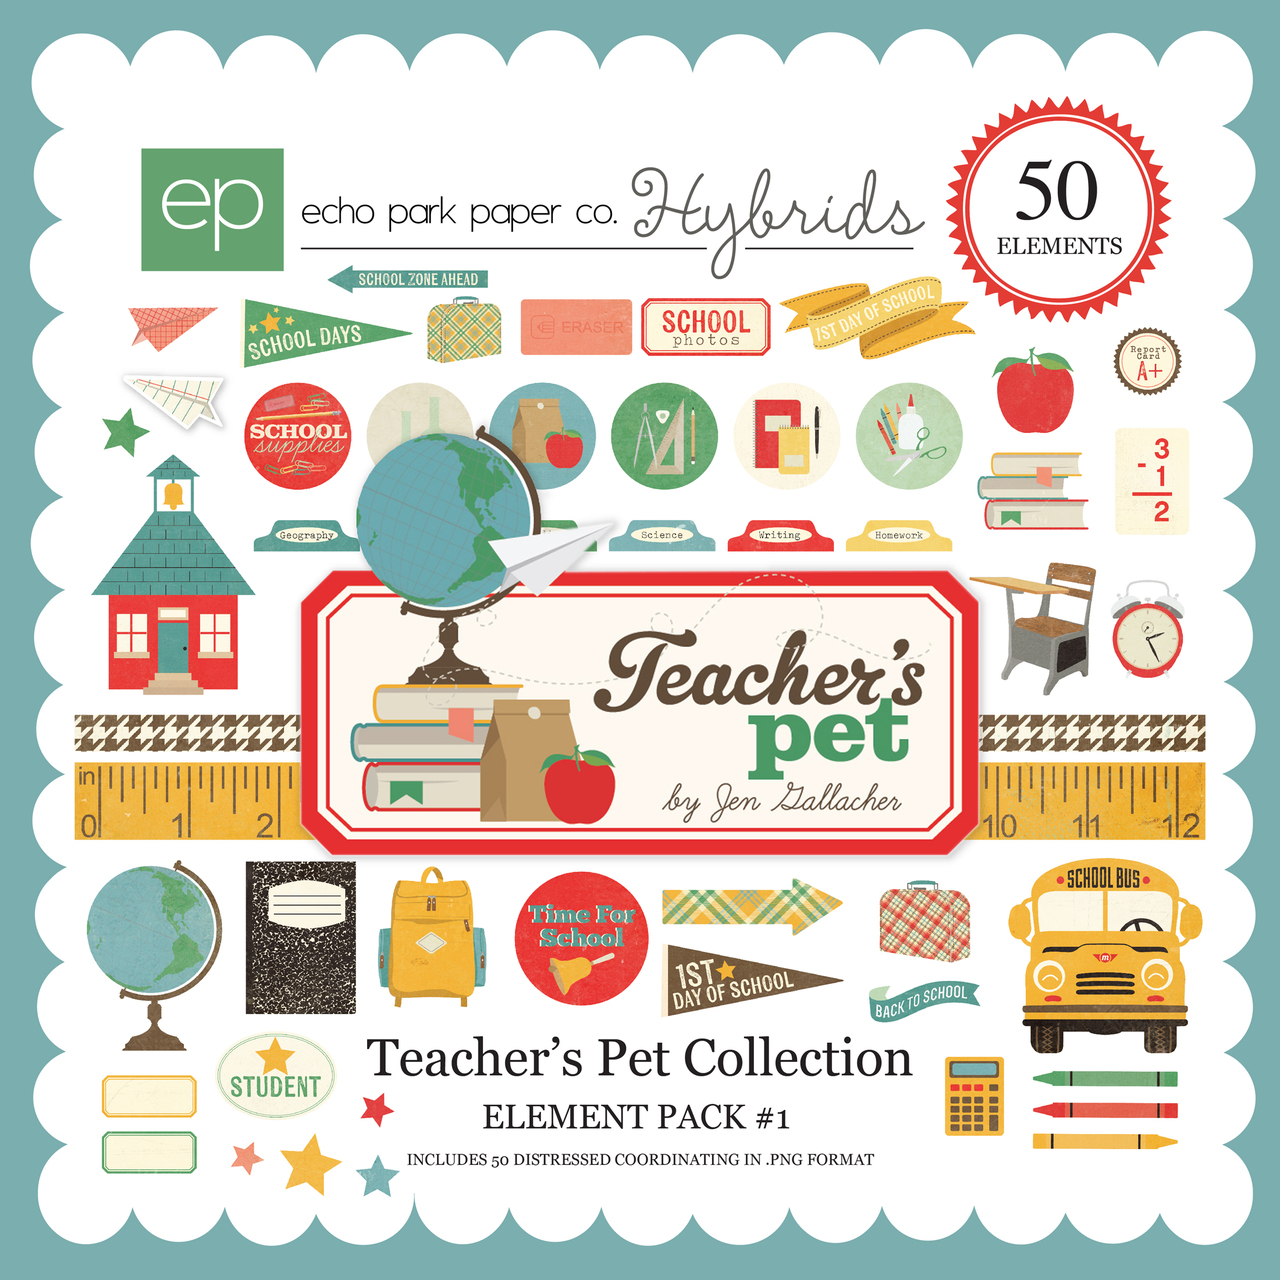 Teacher's Pet Element Pack #1